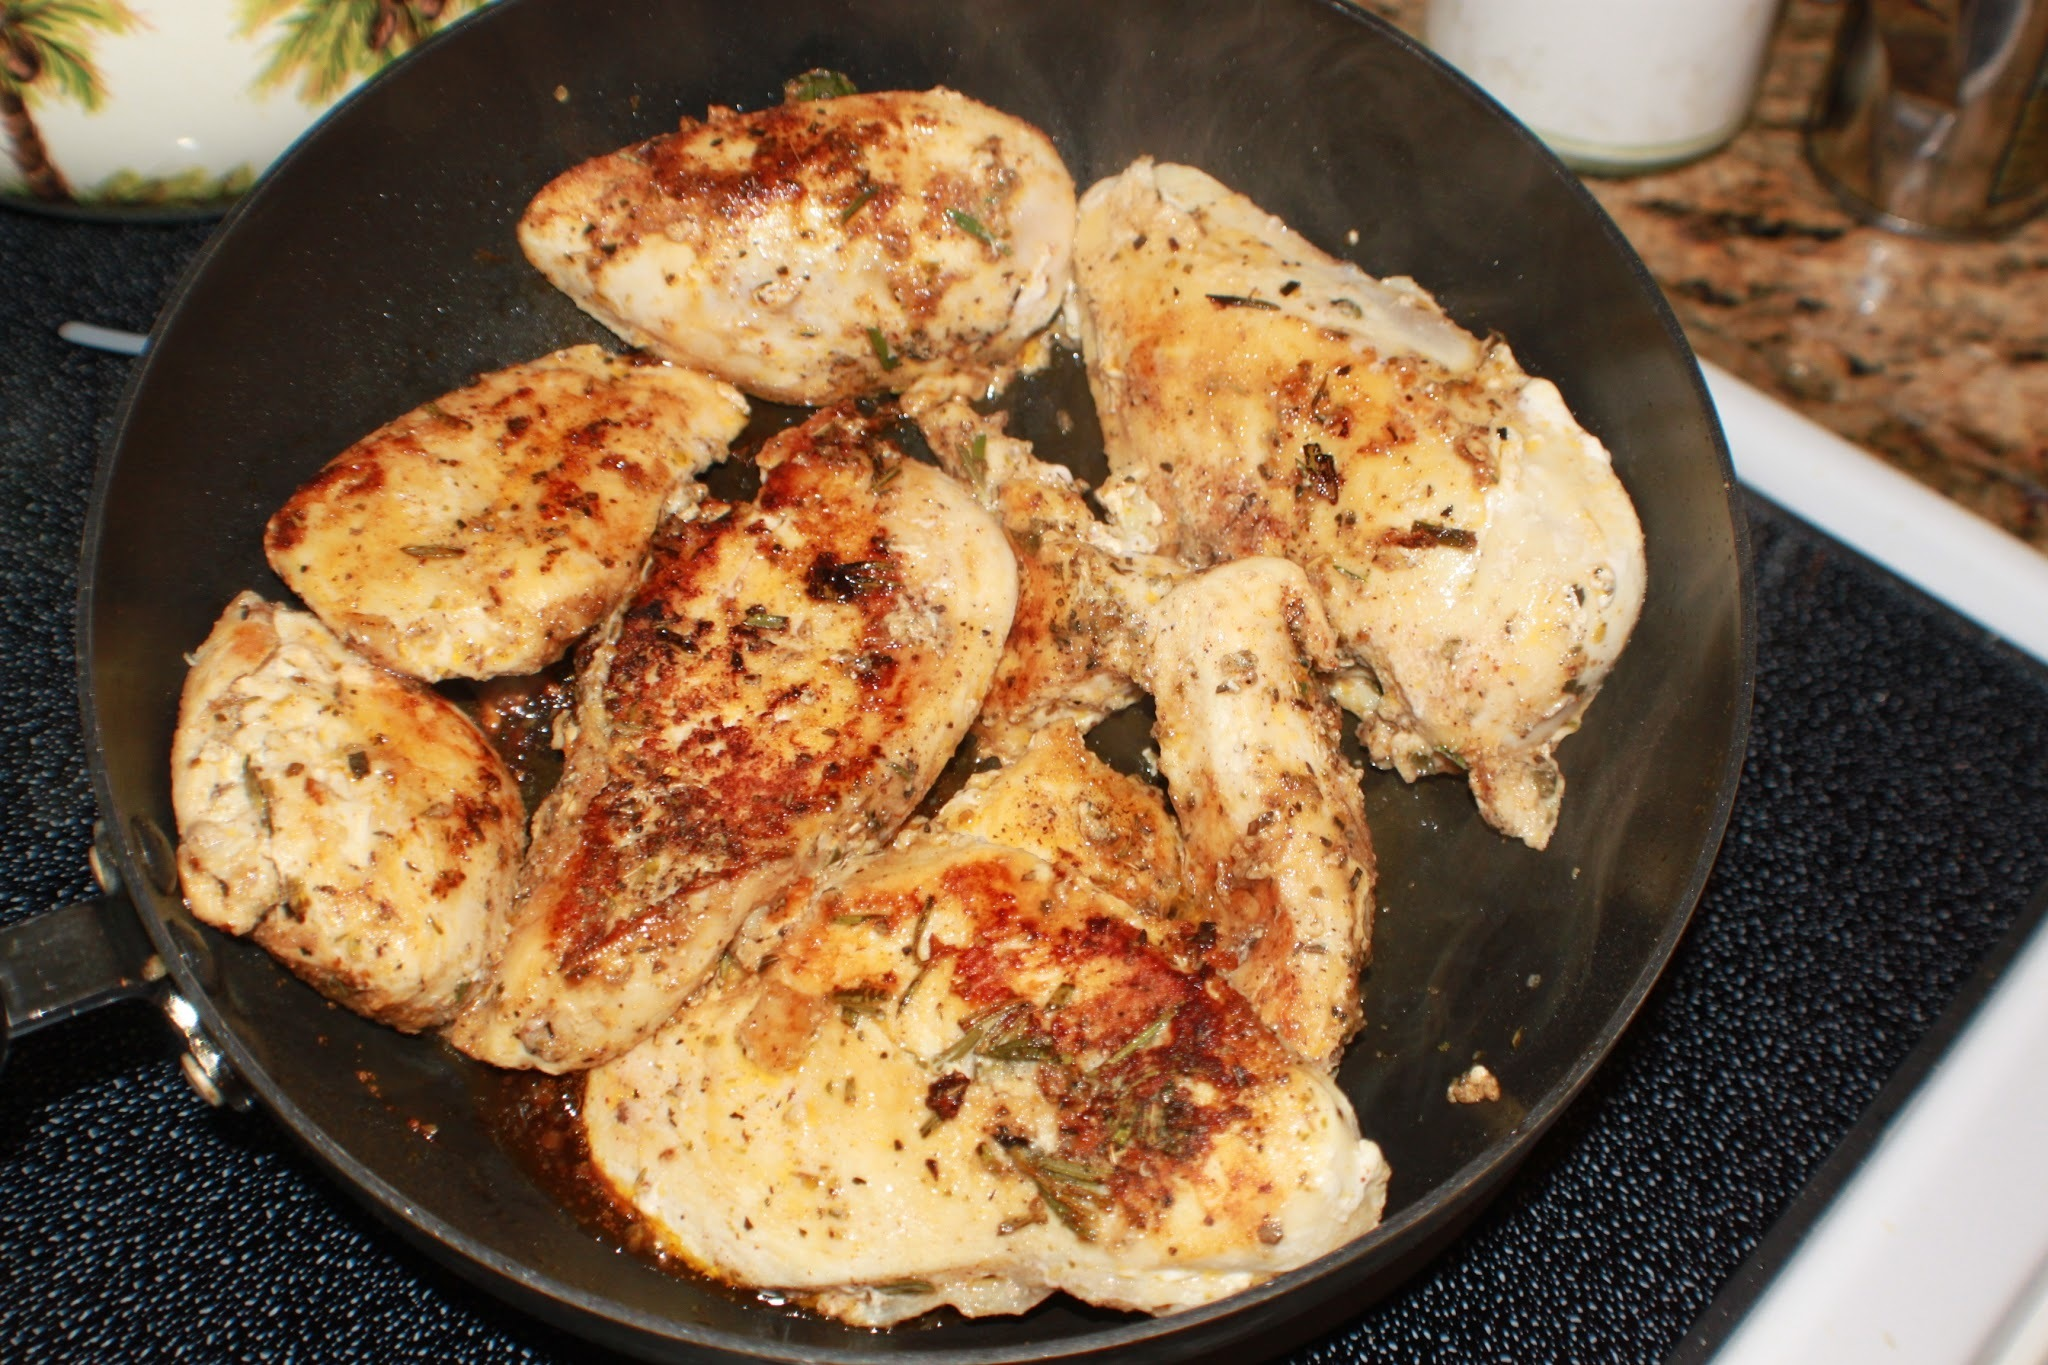 Pan Fried Chicken with Garlic Butter and Herb Recipe